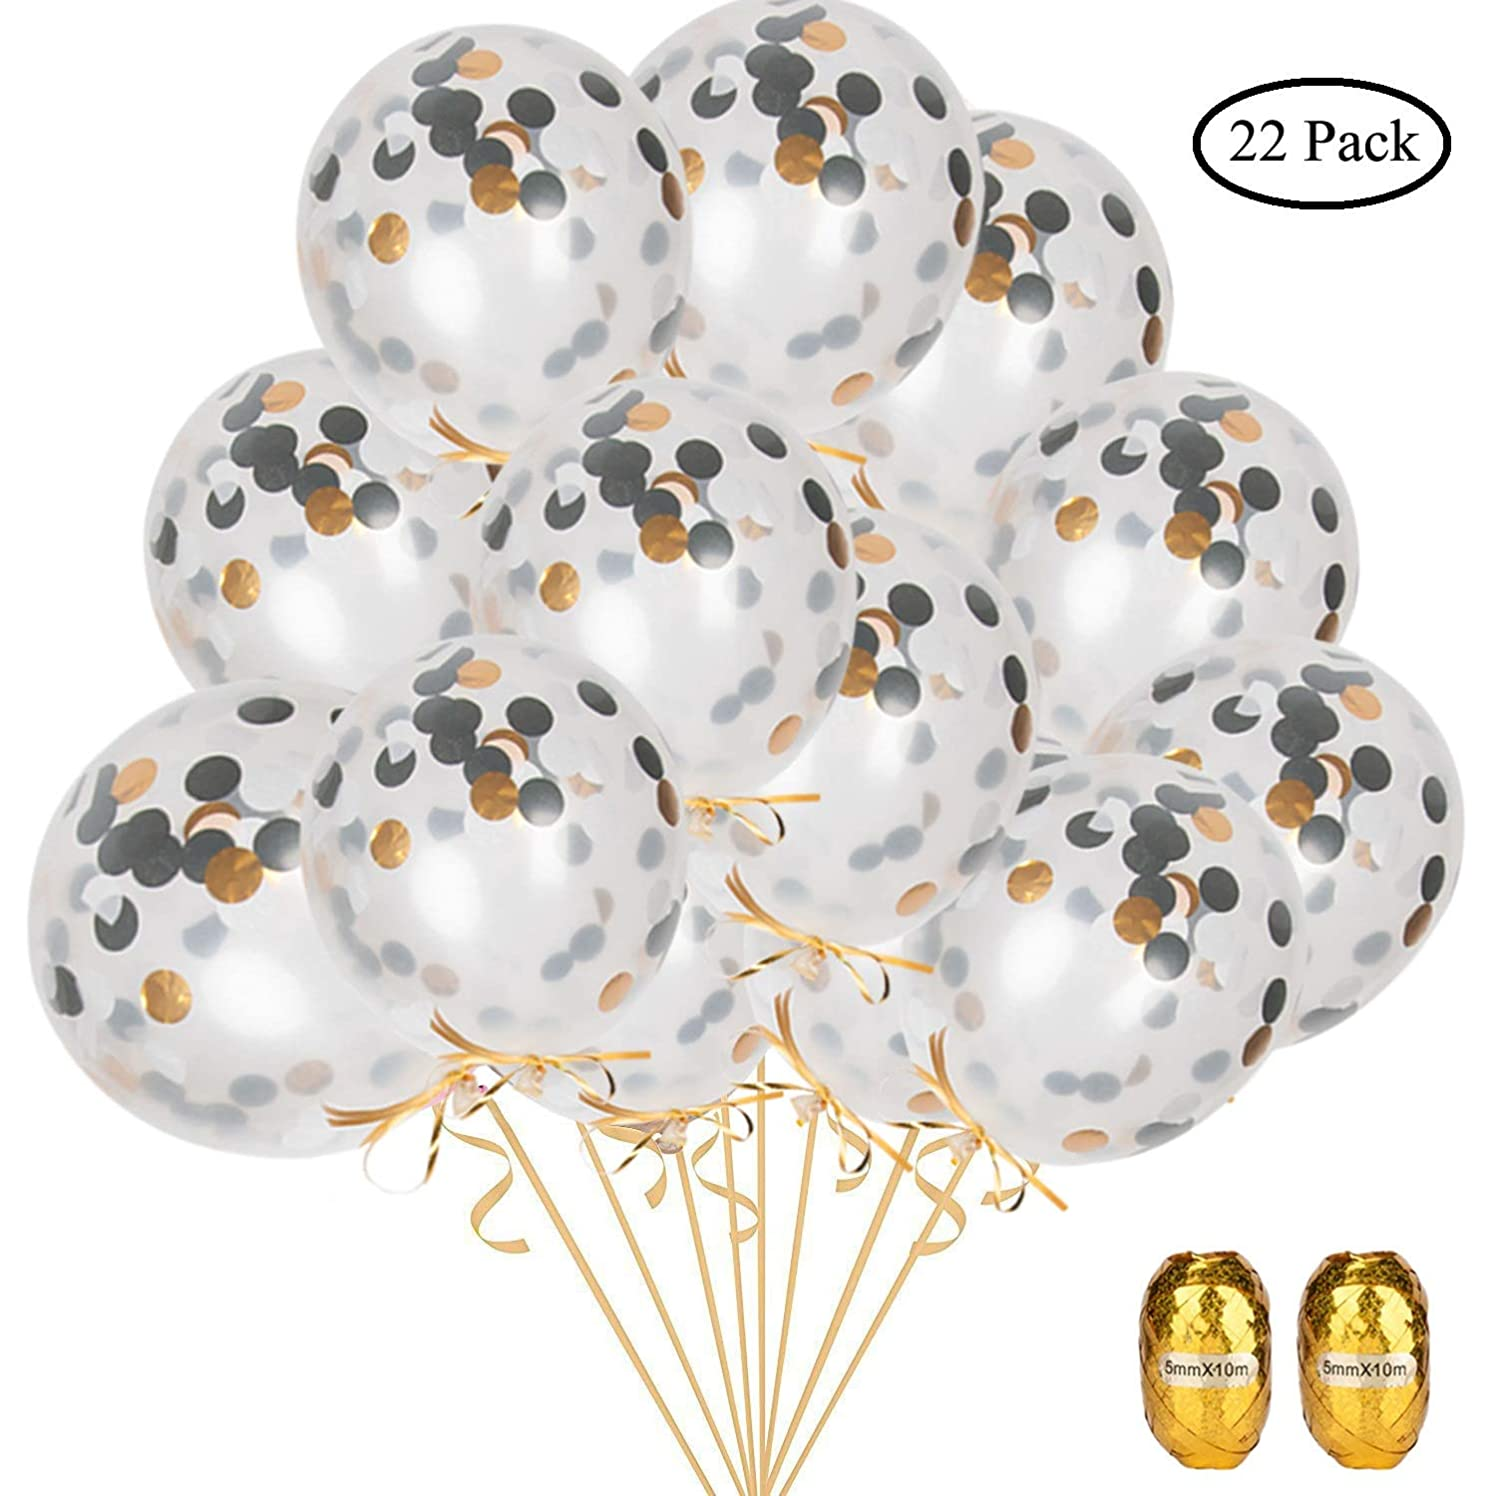 BTSD-home 12 Inch Black and Gold Confetti Balloons-20 Pack Latex Confetti Party Balloons with 2 Pieces Gold Ribbons for Wedding Birthday Confession Bridal Engagement Valentines Proposal Decorations